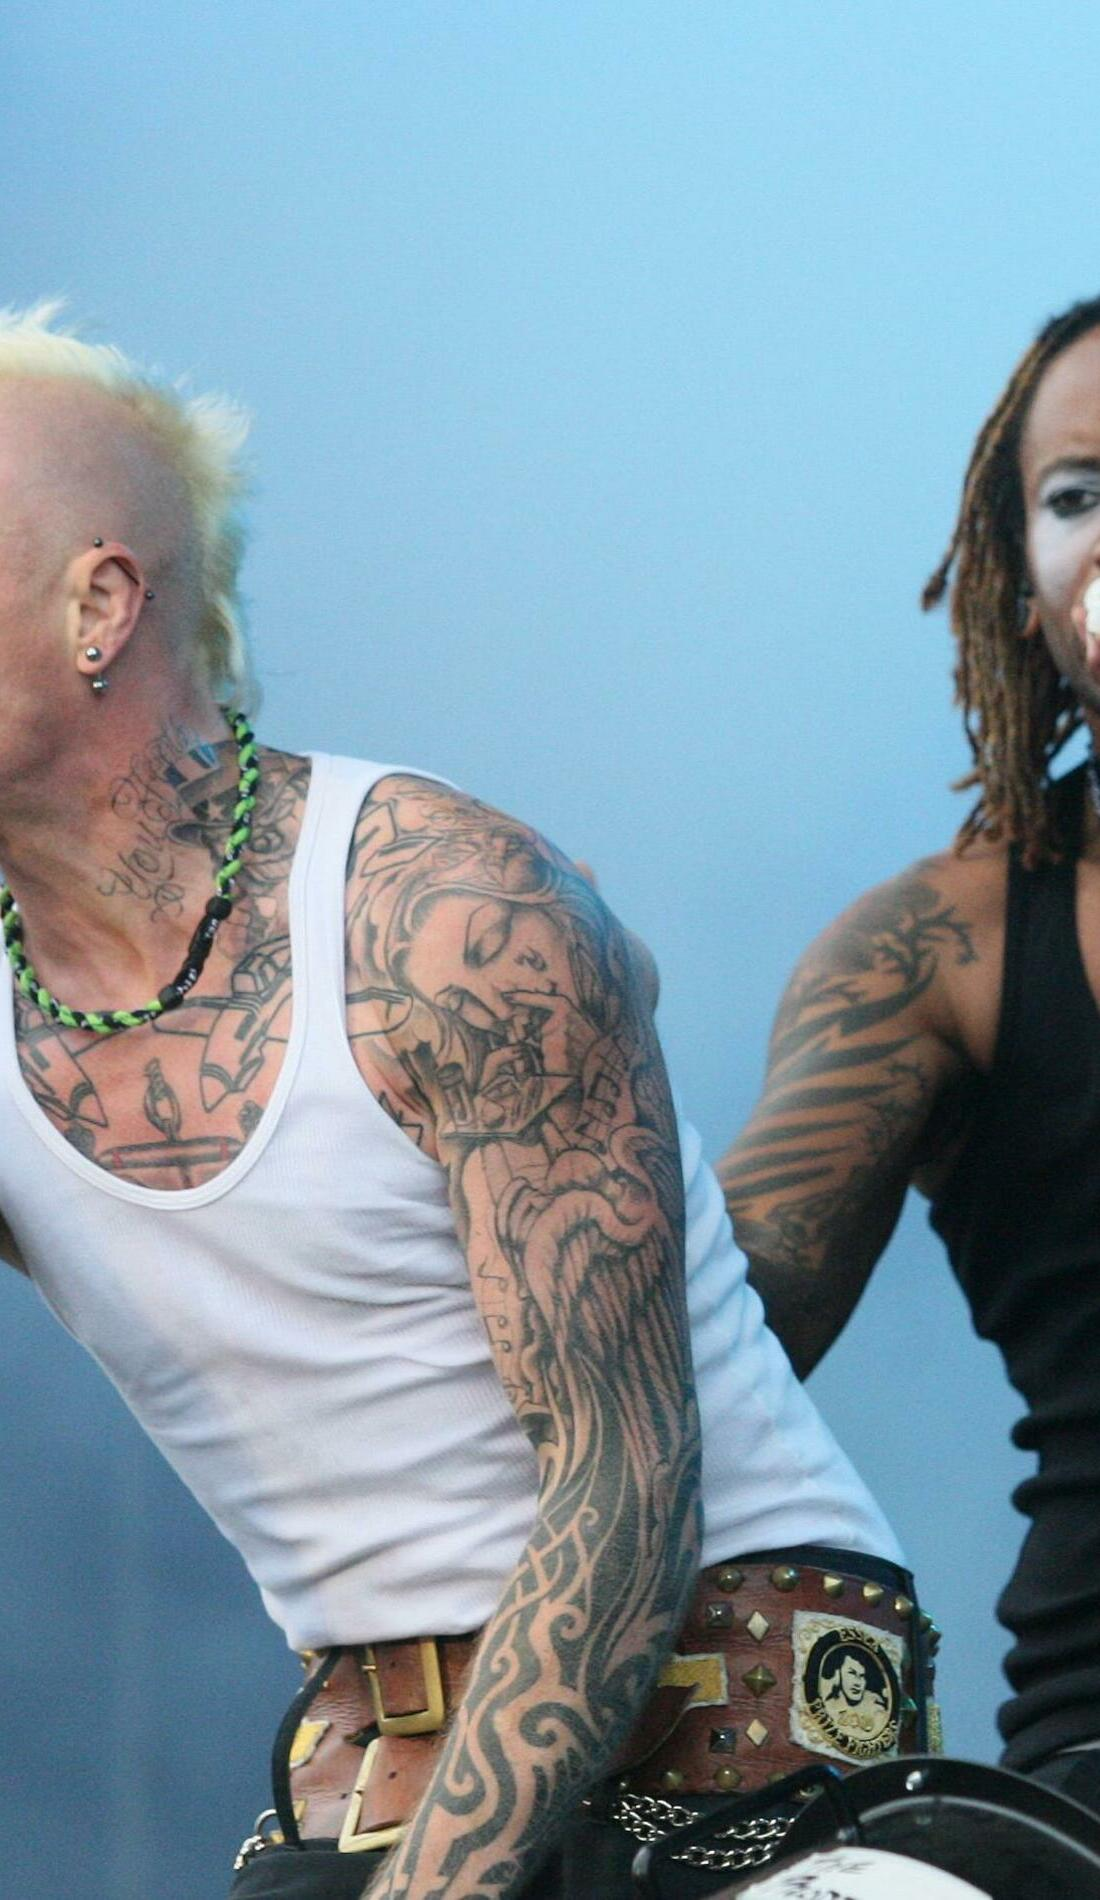 A The Prodigy live event